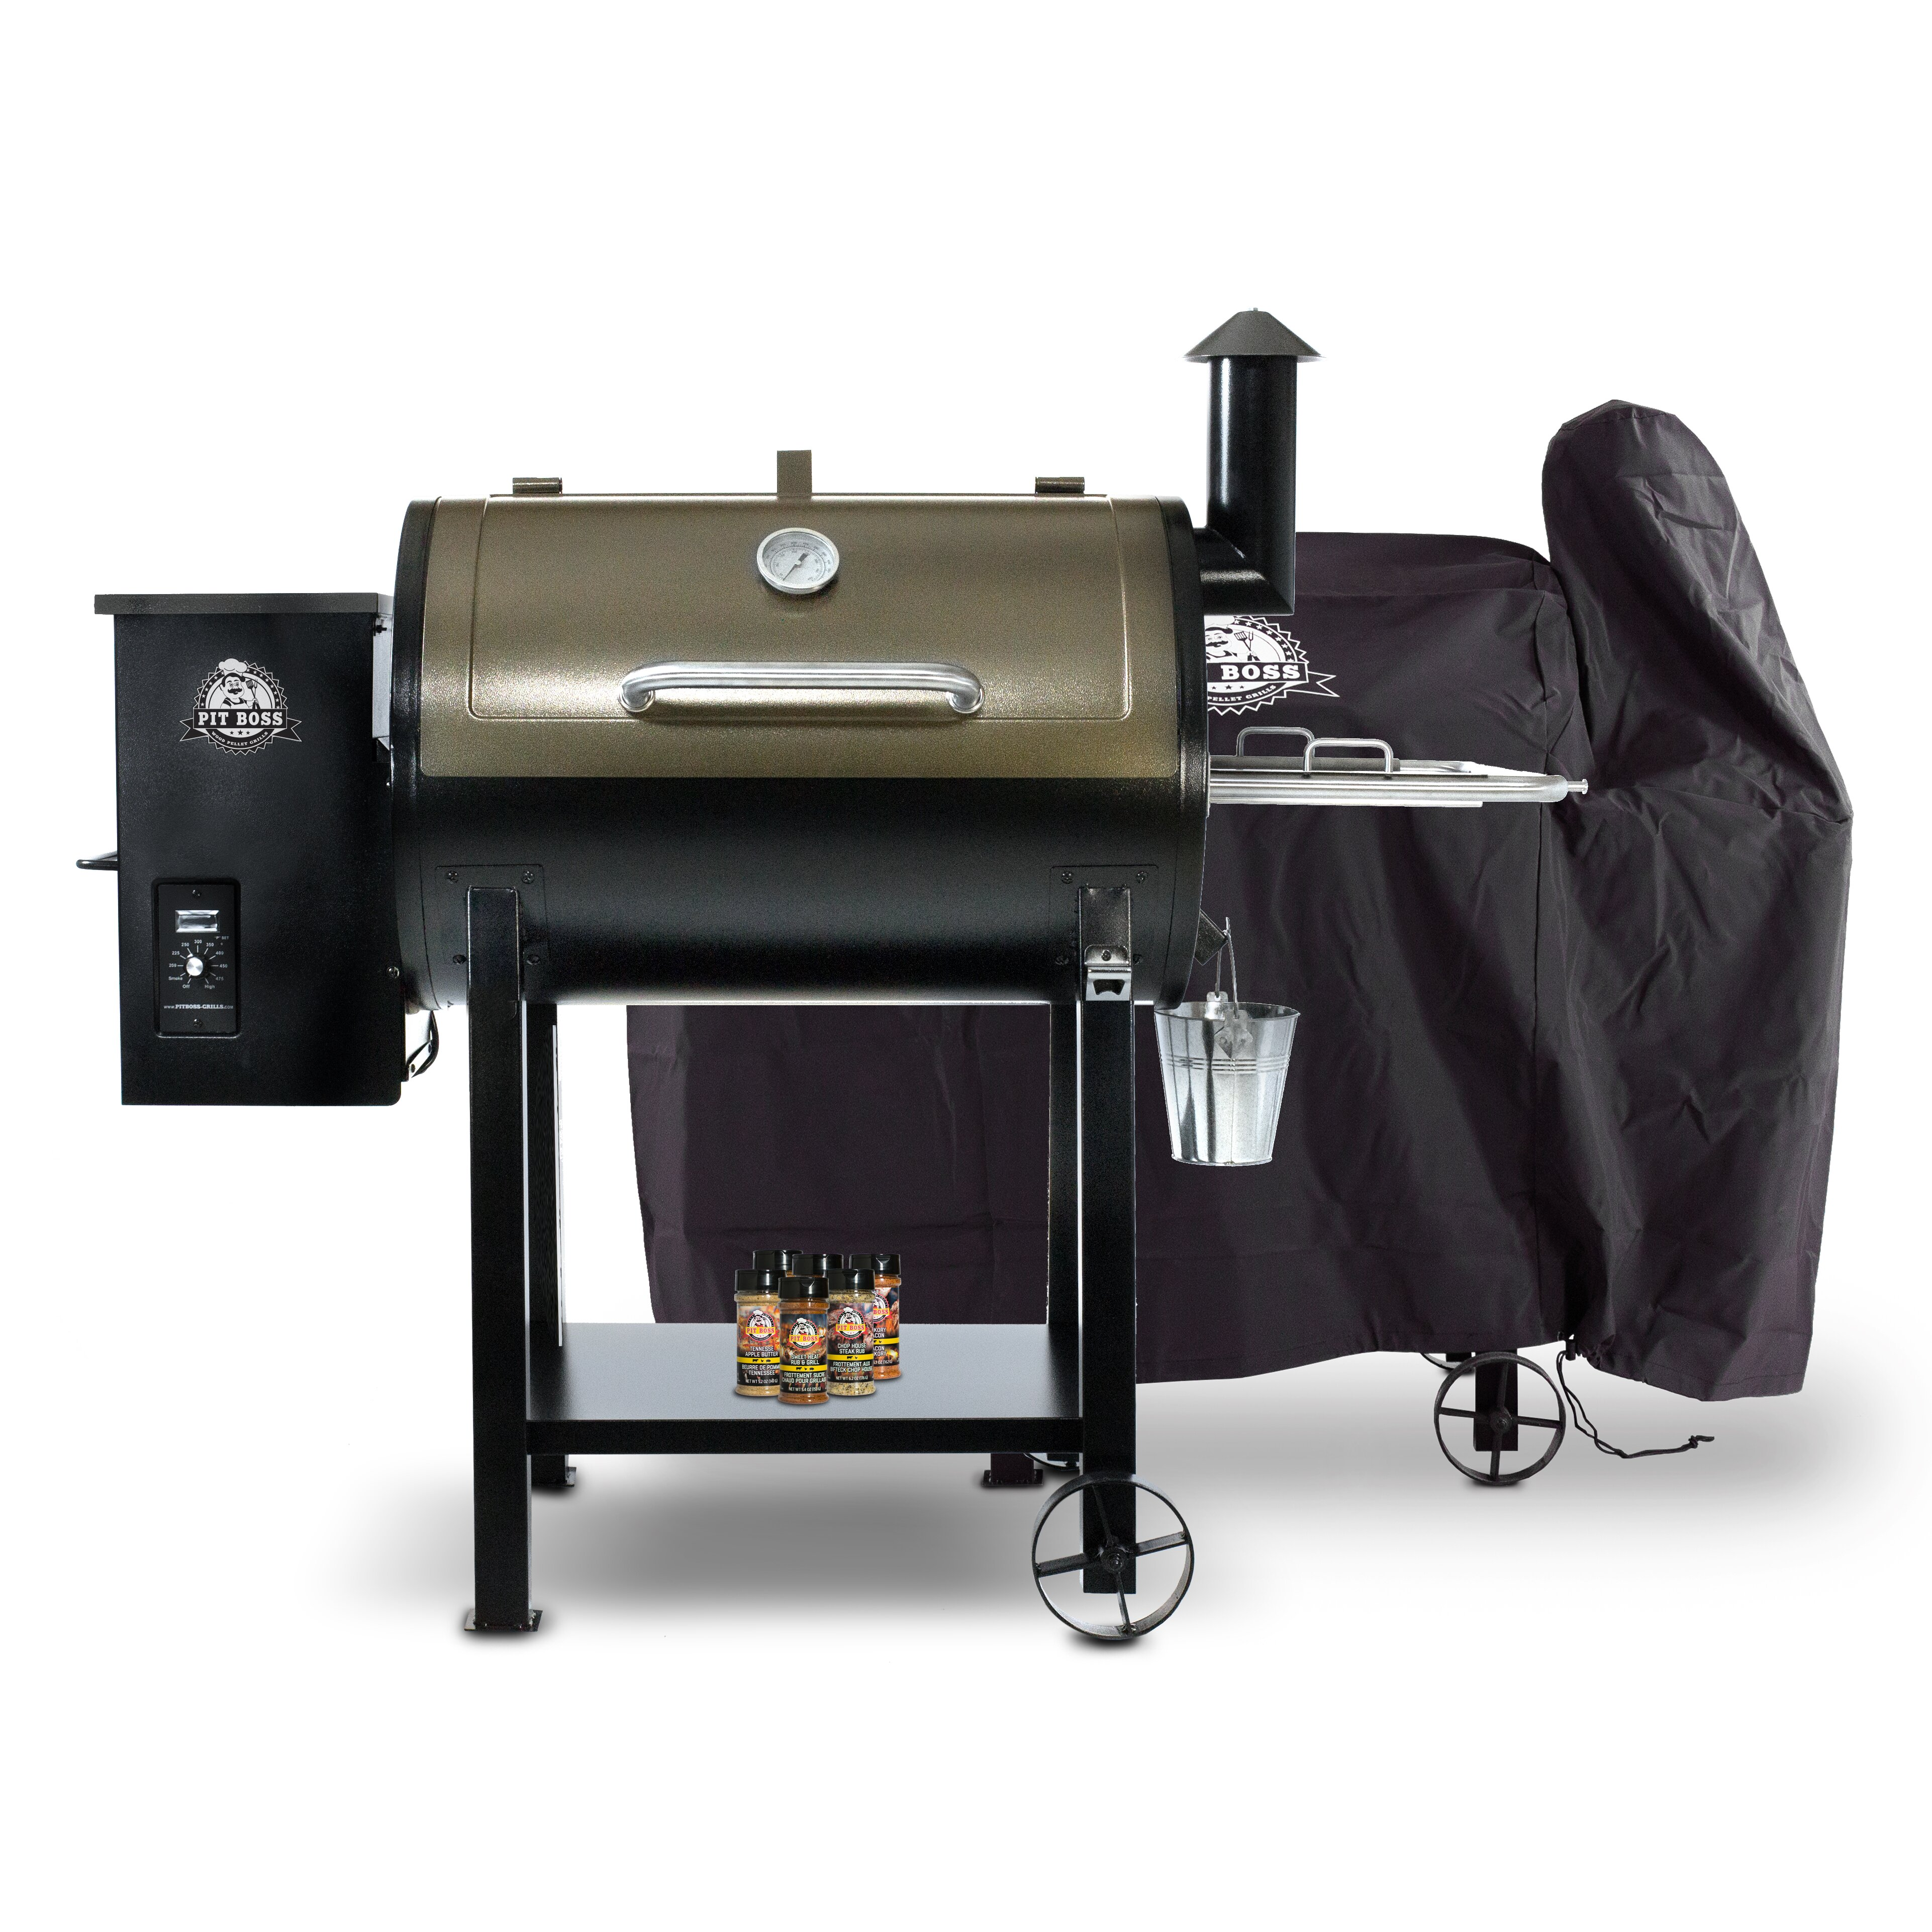 Pit Boss 820D Pellet Grill with Cover and Spice Pack   Wayfair ca